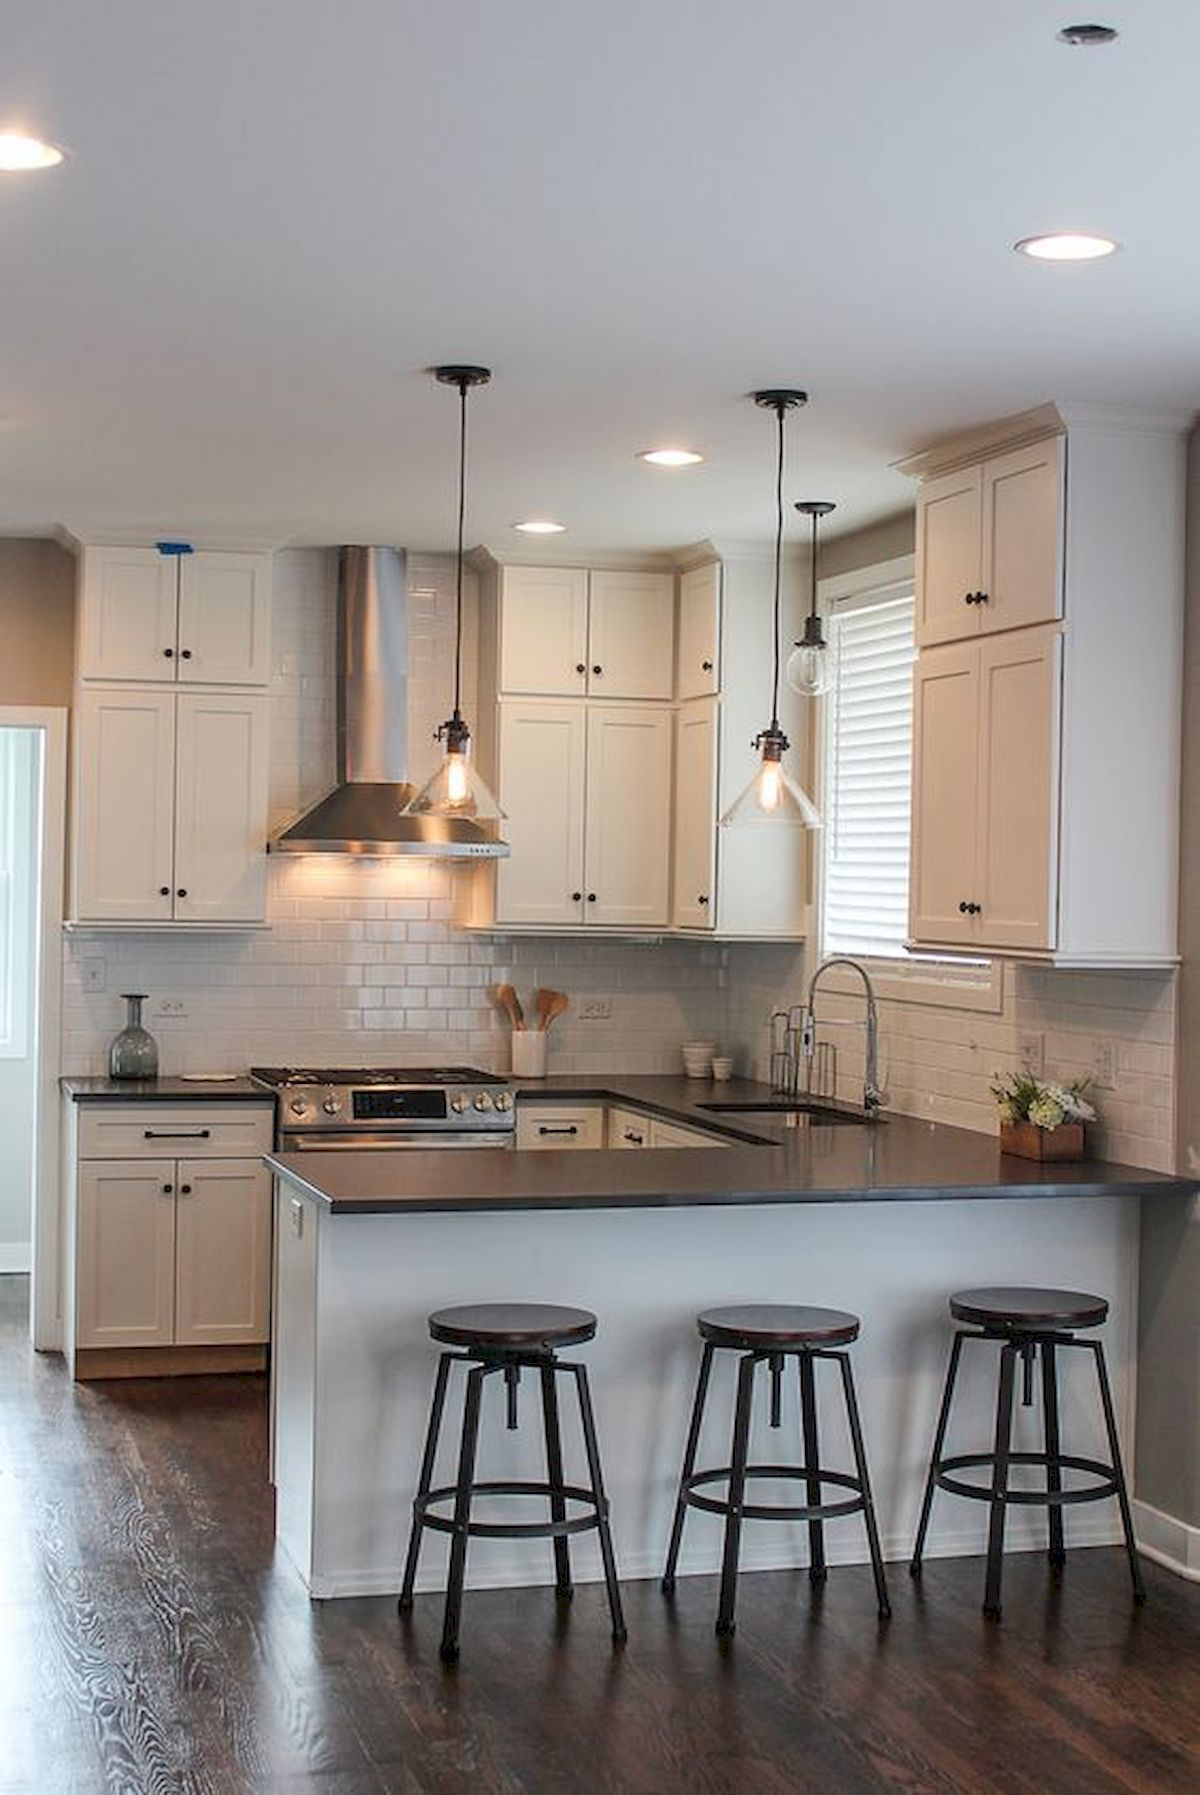 15+ Ideas to Decorate The White Cabinets for Your Kitchen -  Ideas to Decorate The White Cabinets for Your Kitchen #WhiteKitchenCabinets #WhiteKitchen #WhiteCab - #cabinets #decorate #ideas #interiordesignkitchen #kitchen #KitchenRemodeling #white